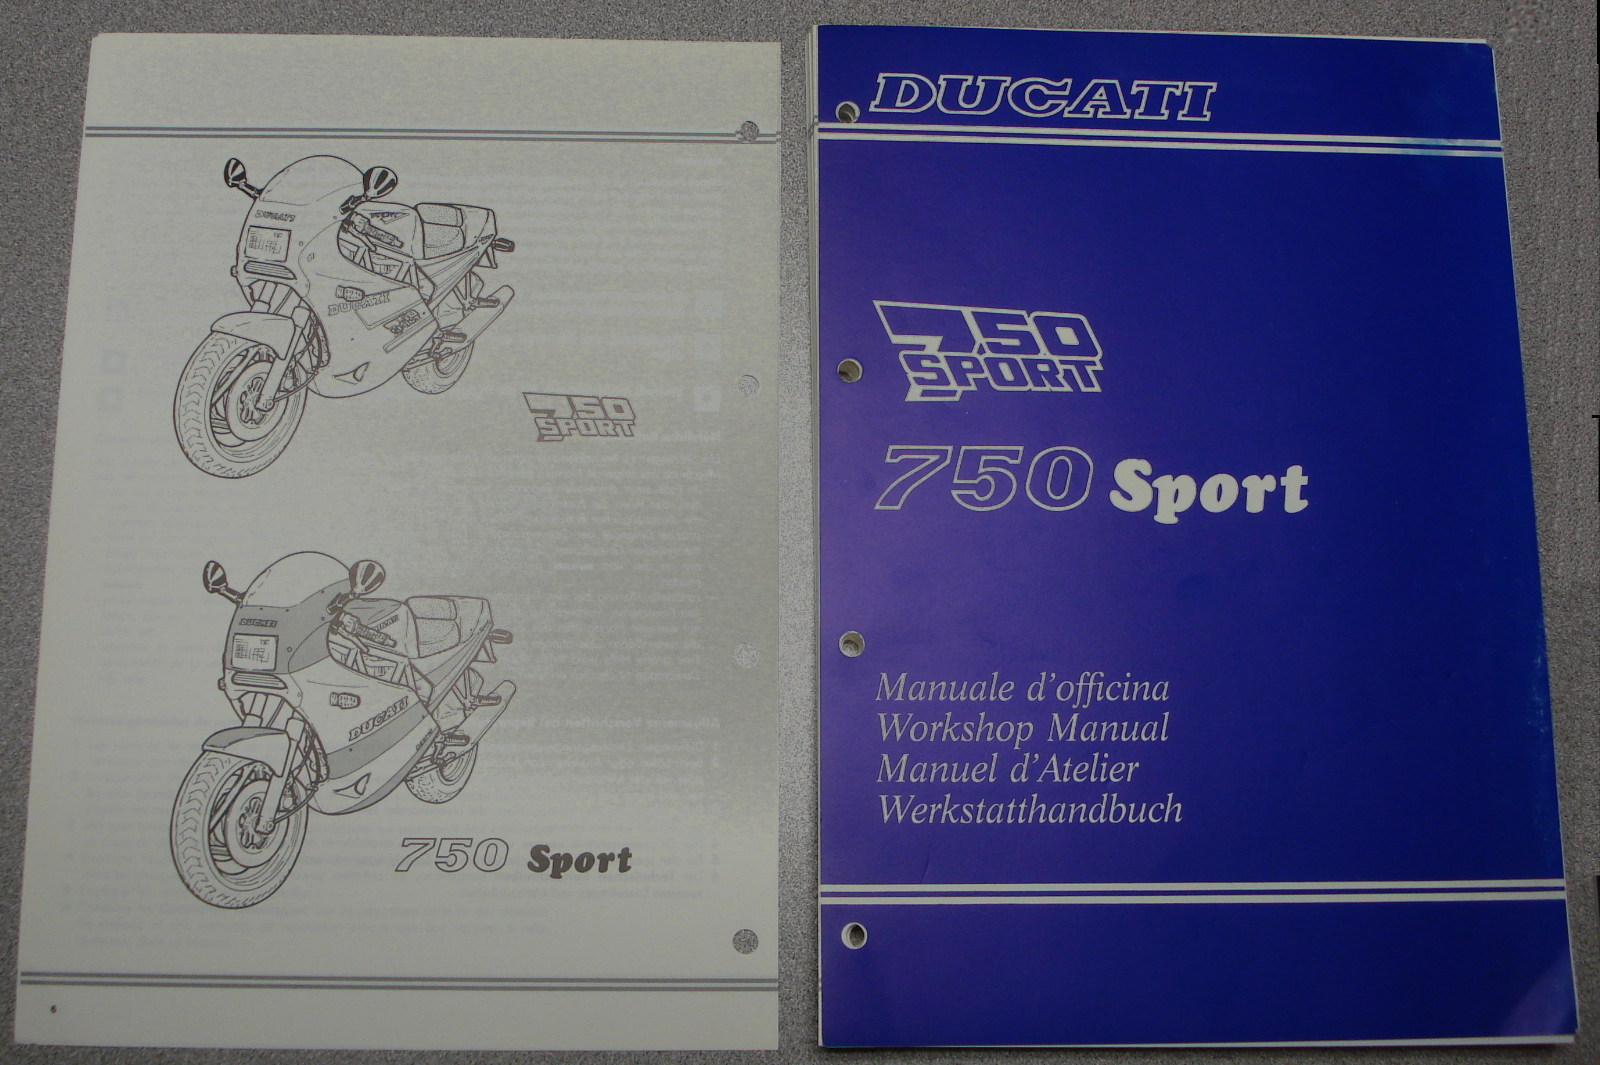 Ducati 750 Sport Workshop Manual